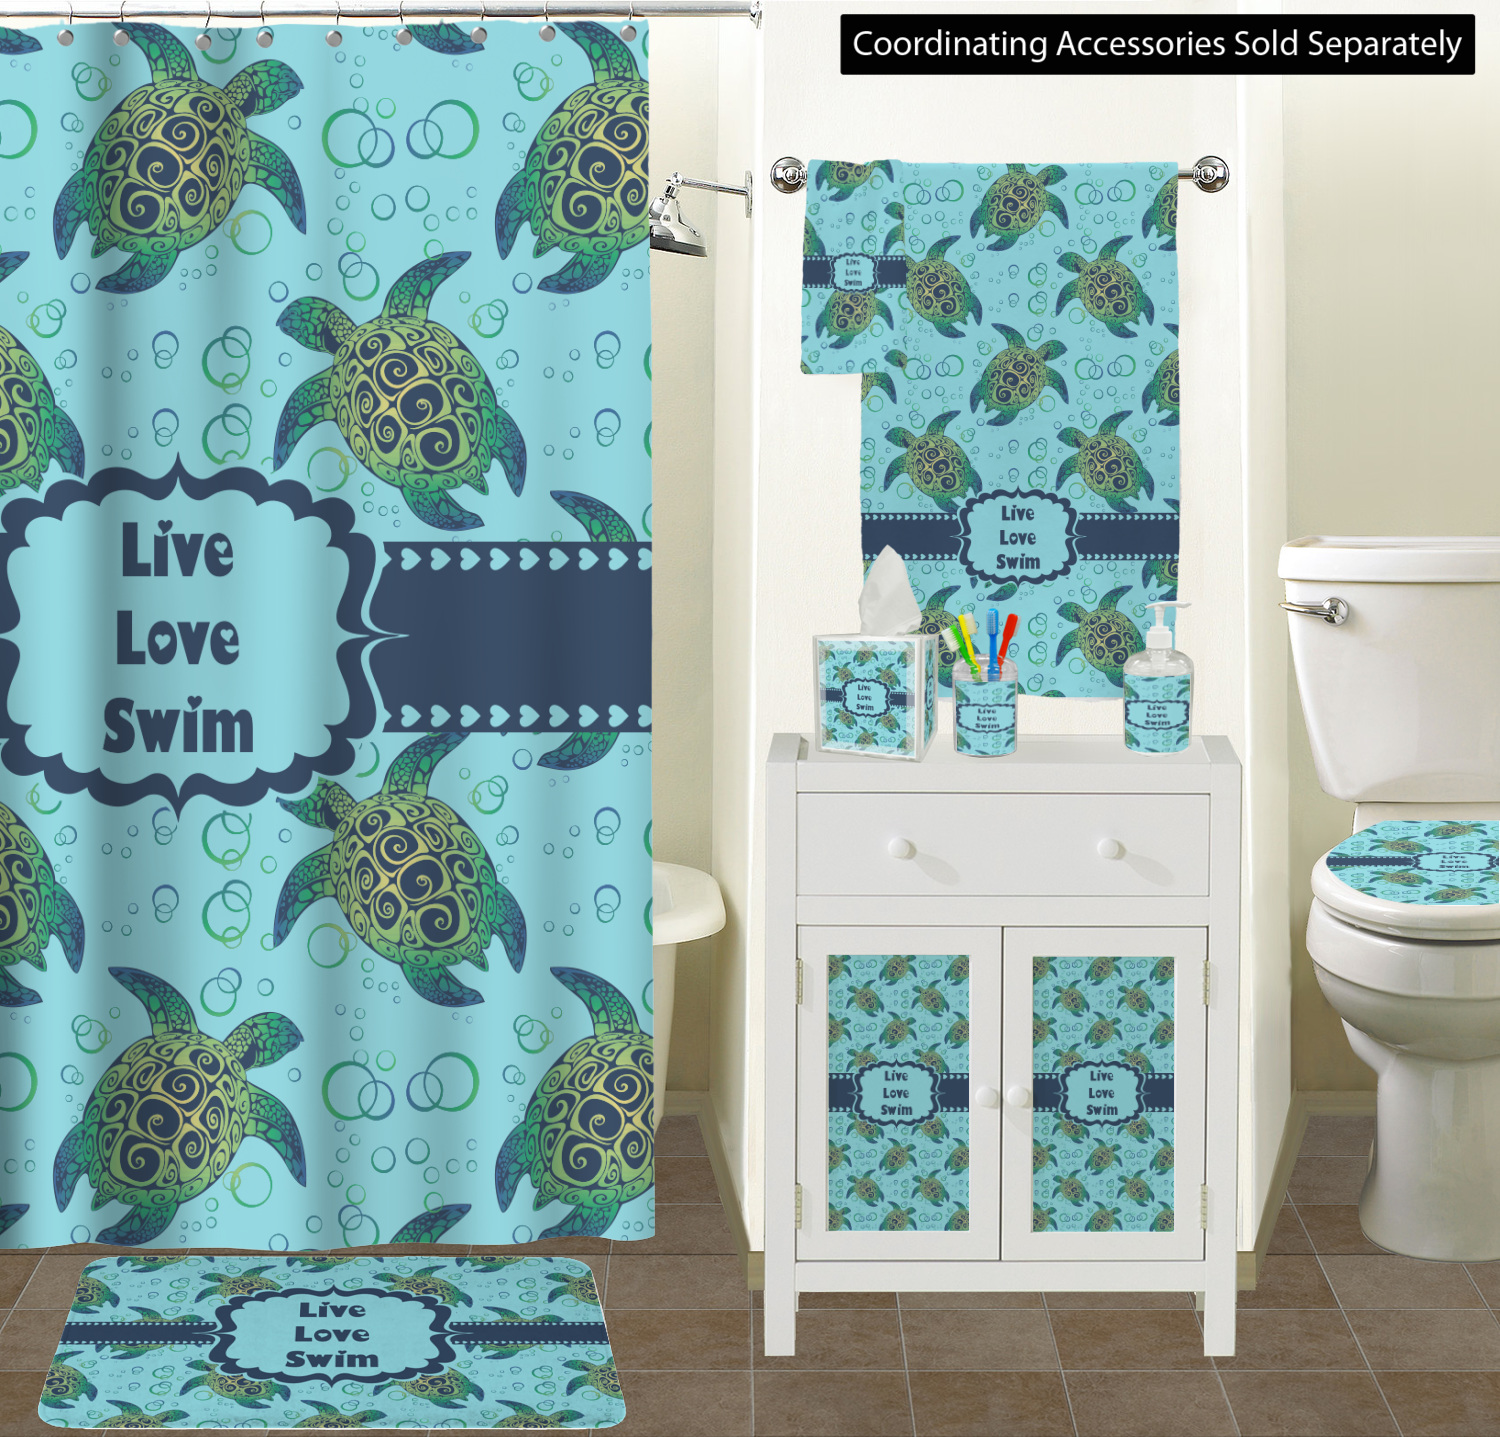 Sea Turtles Bathroom Accessories Set